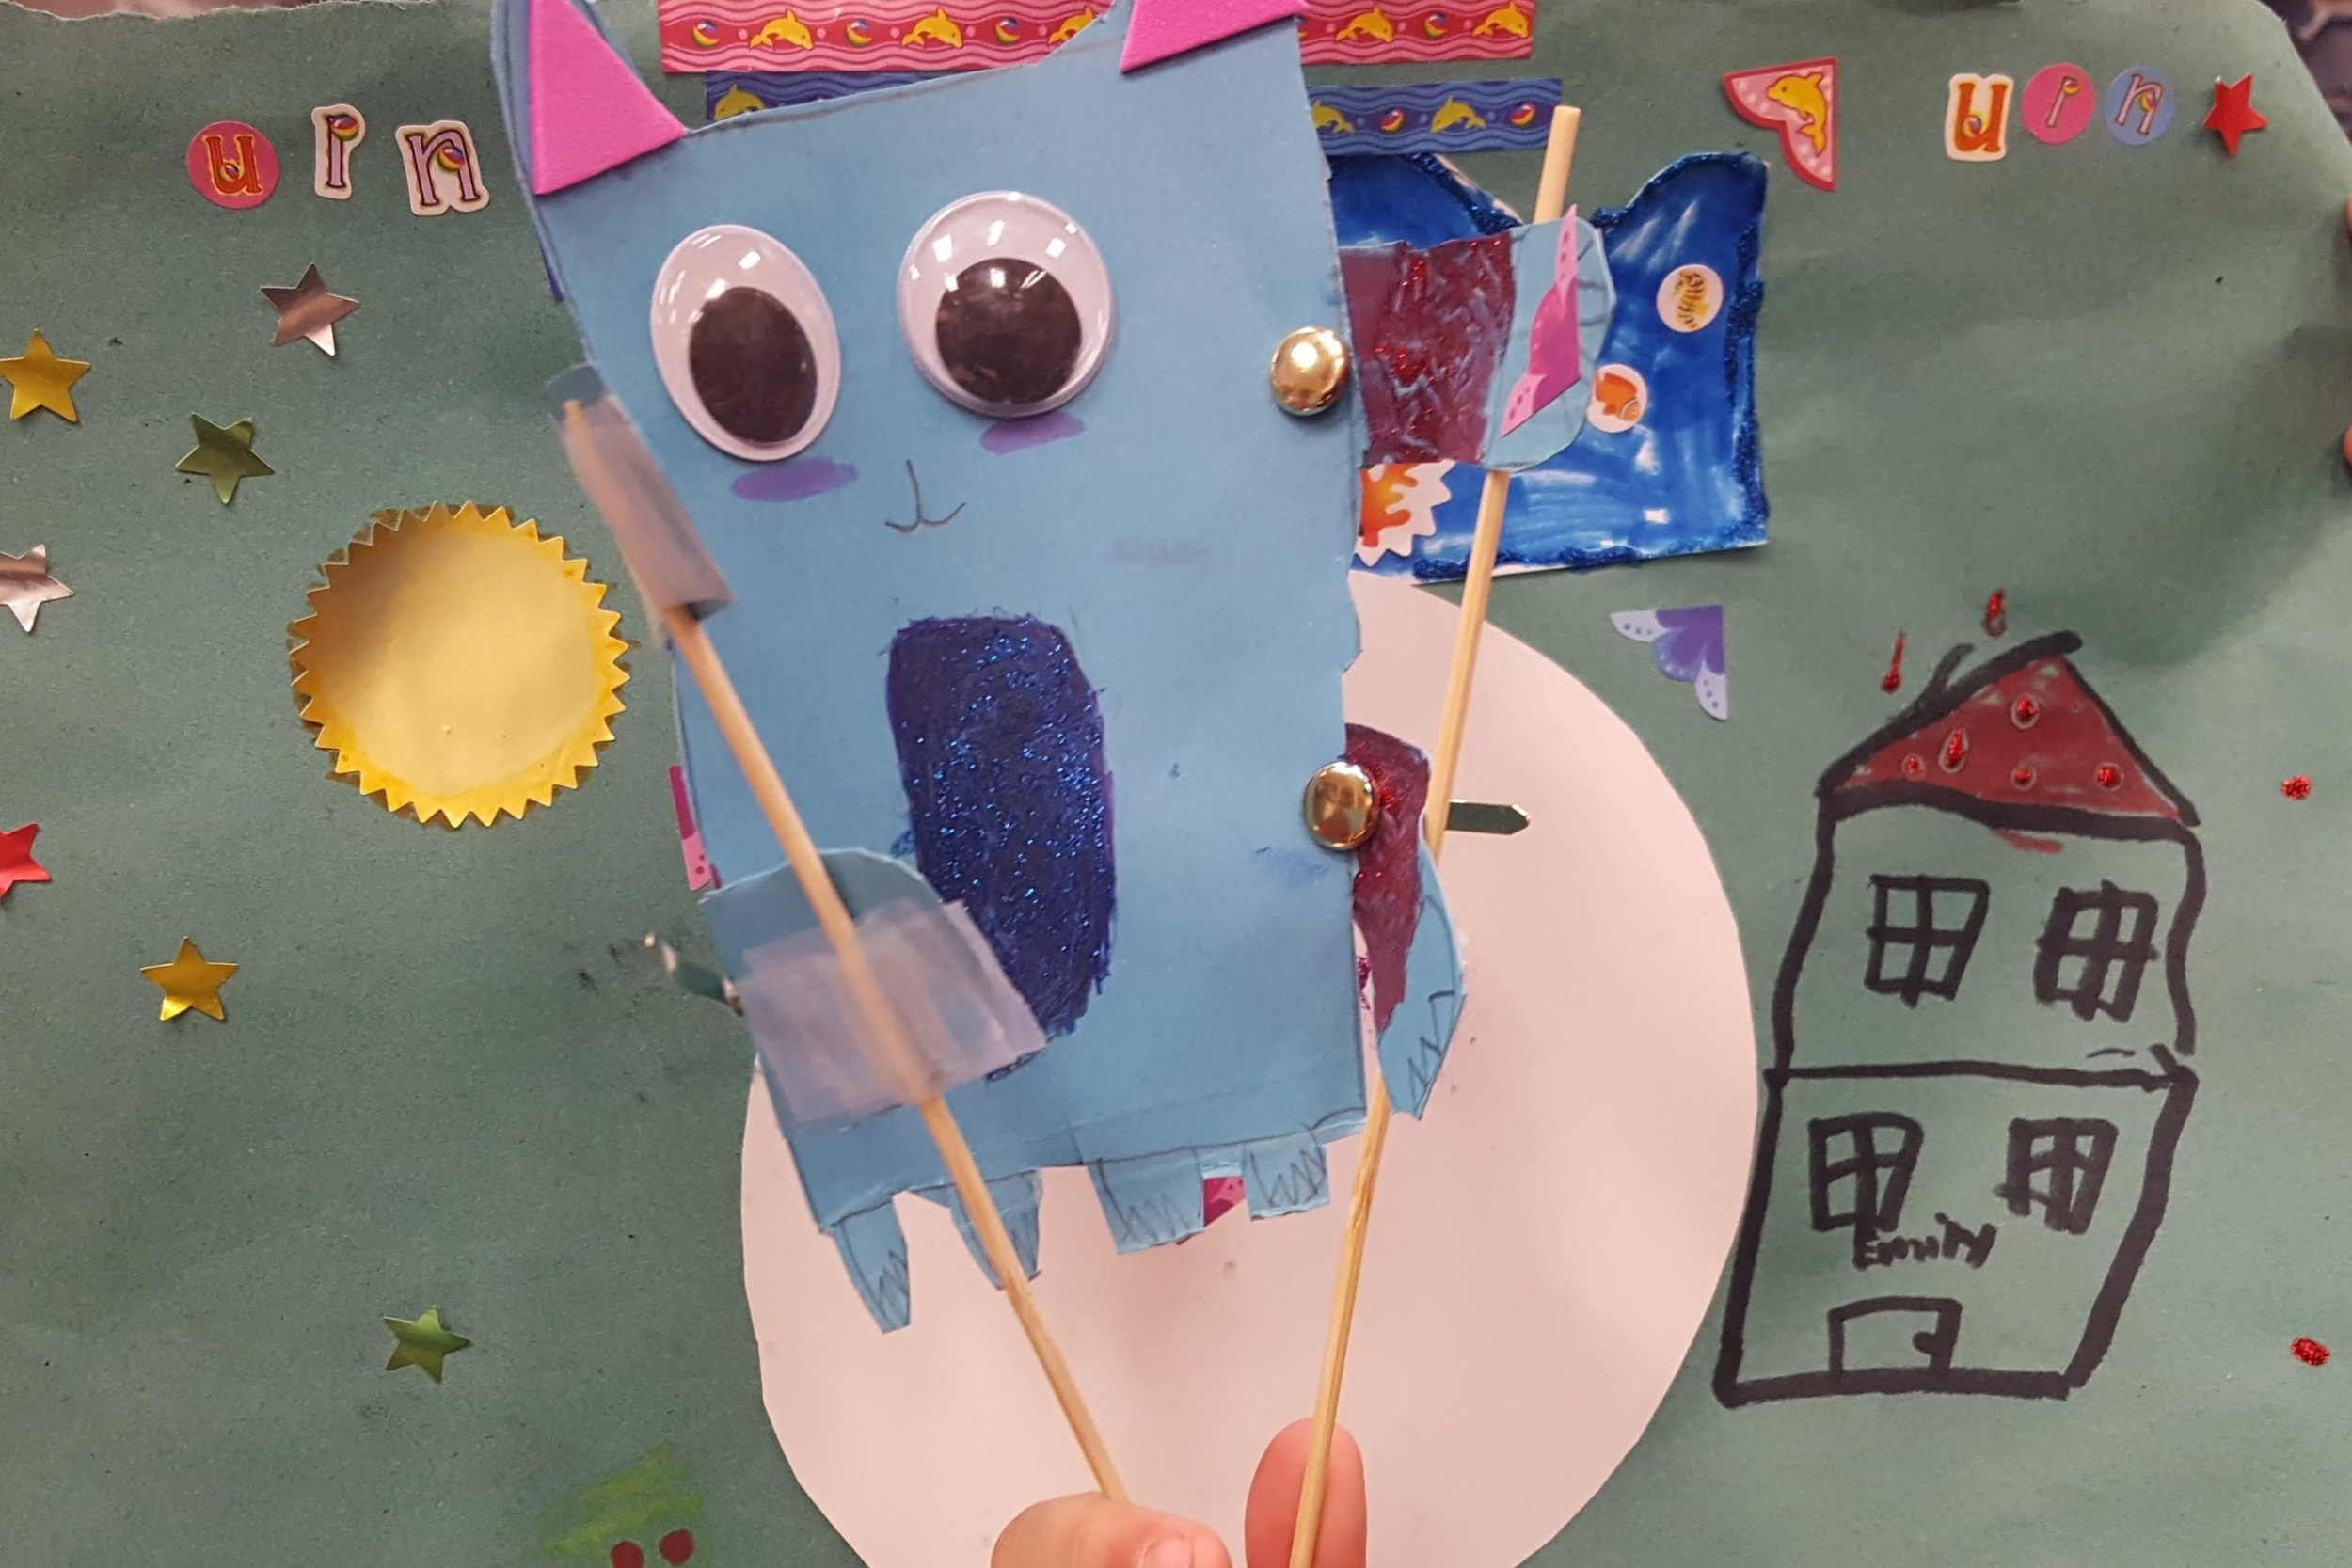 Over the course of three days, 4th-, 5th-, and 6th-graders at a local school made their own planets, and puppets of the creatures who live there! Then they created voices and made a video of their new solar system! May 2018.